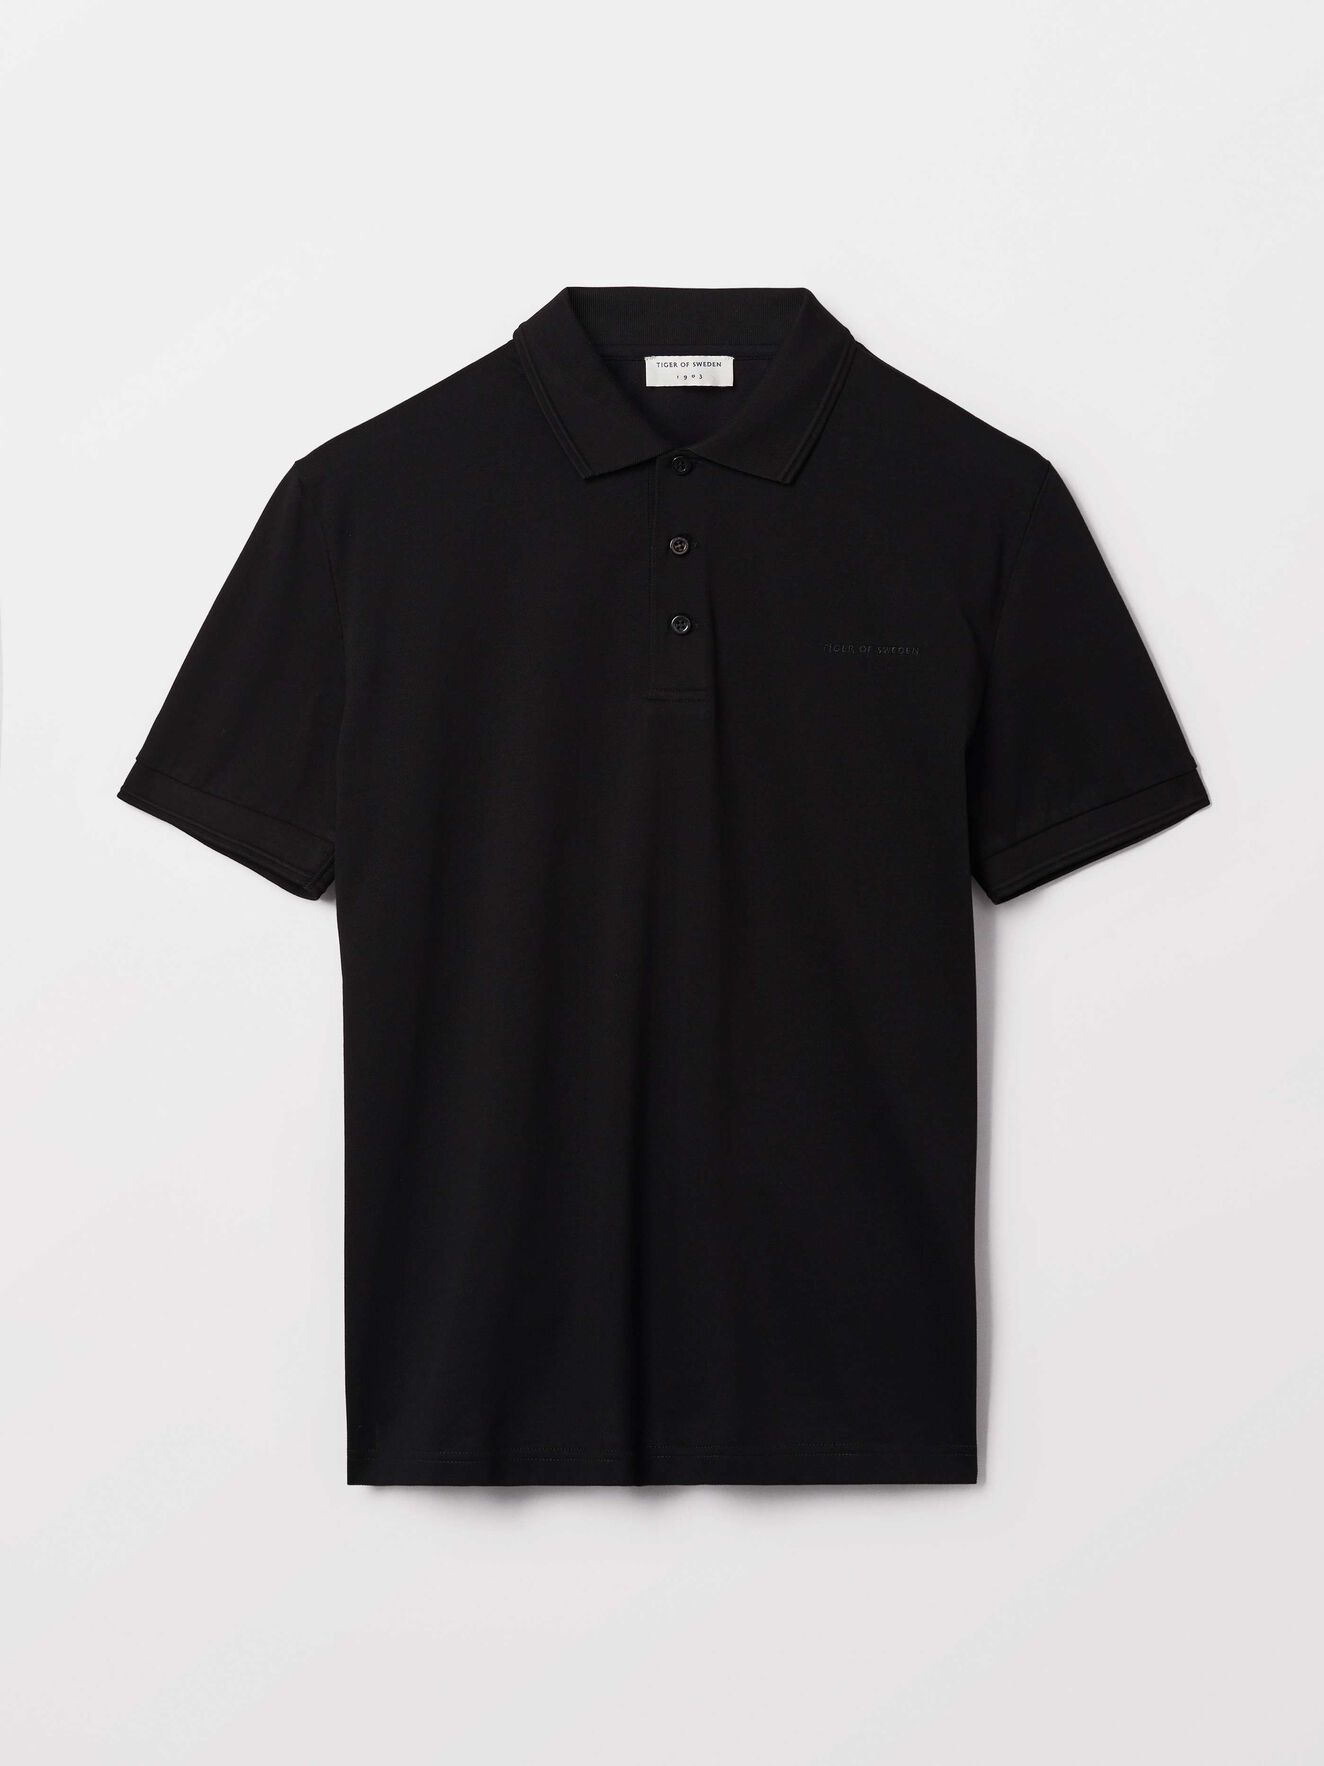 Darios Polo Shirt in Black from Tiger of Sweden